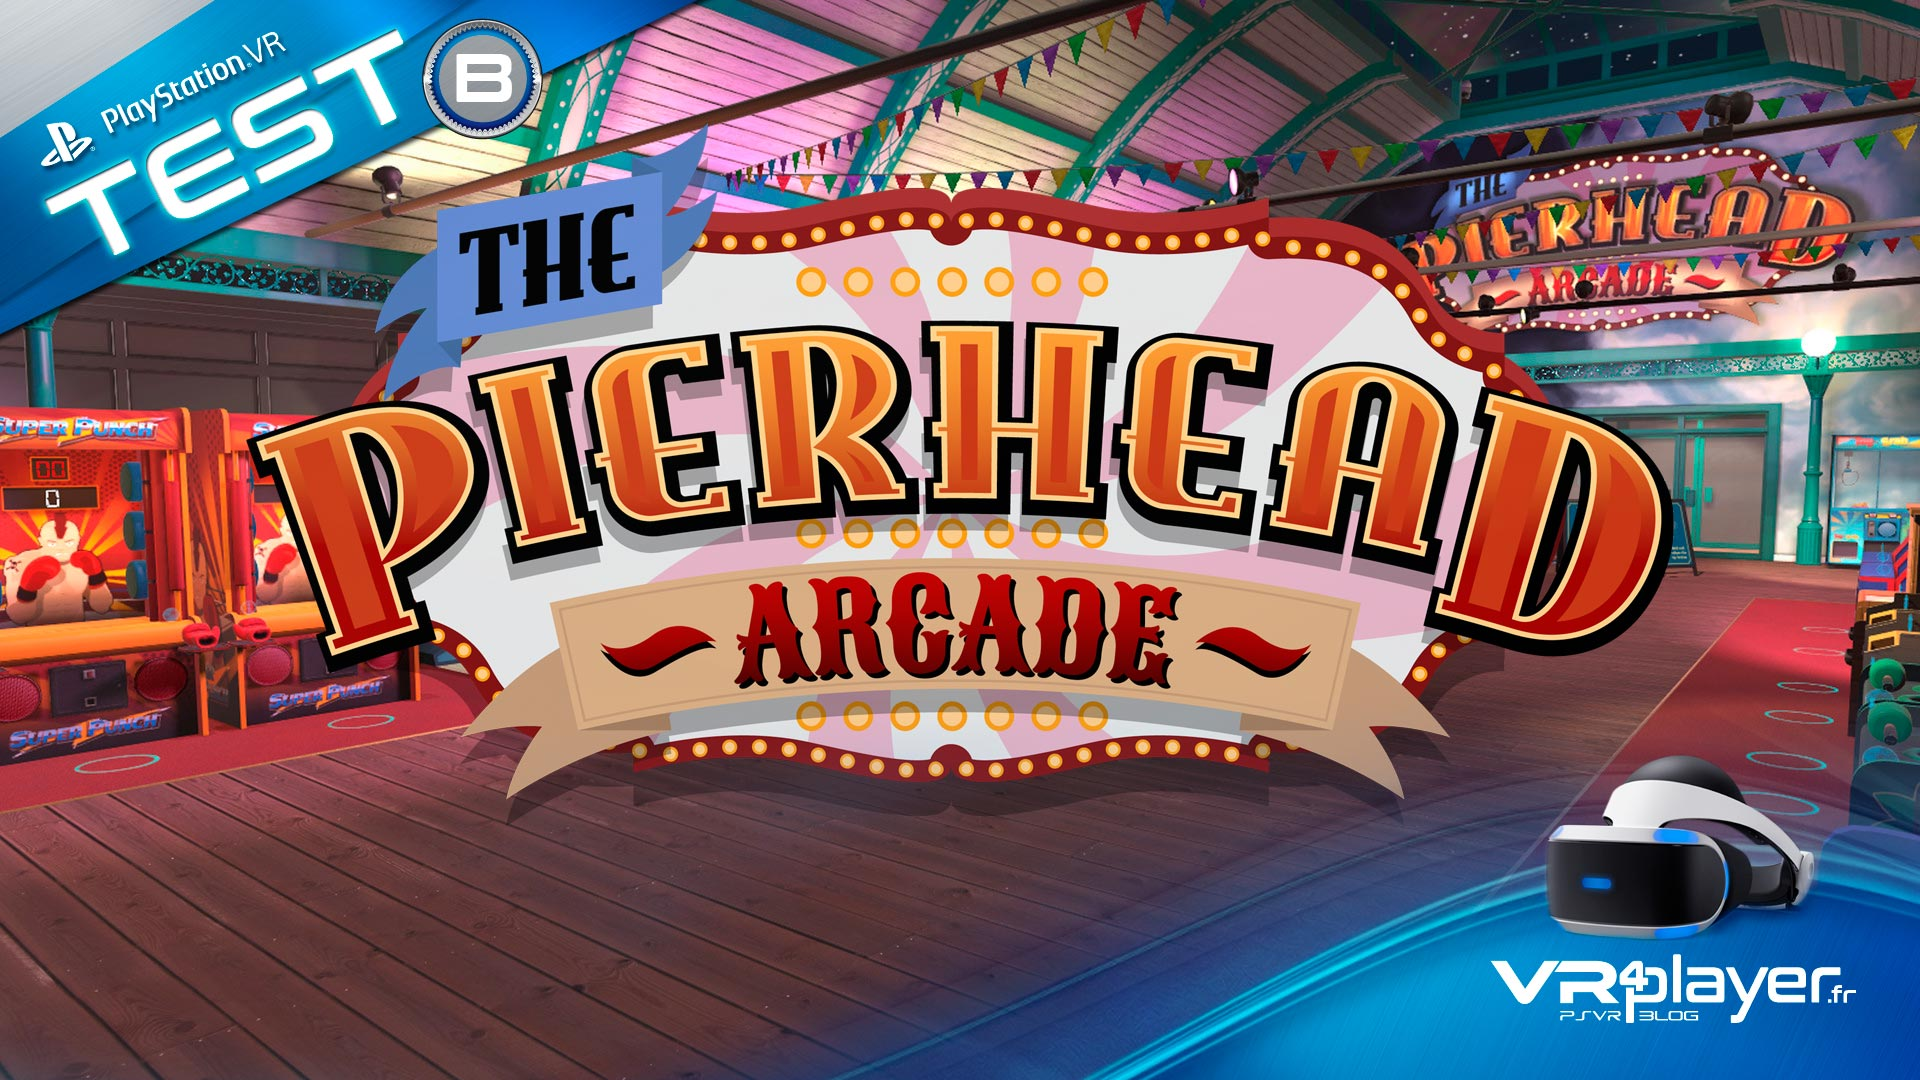 The Pierhead Arcade VR4Player Test Review